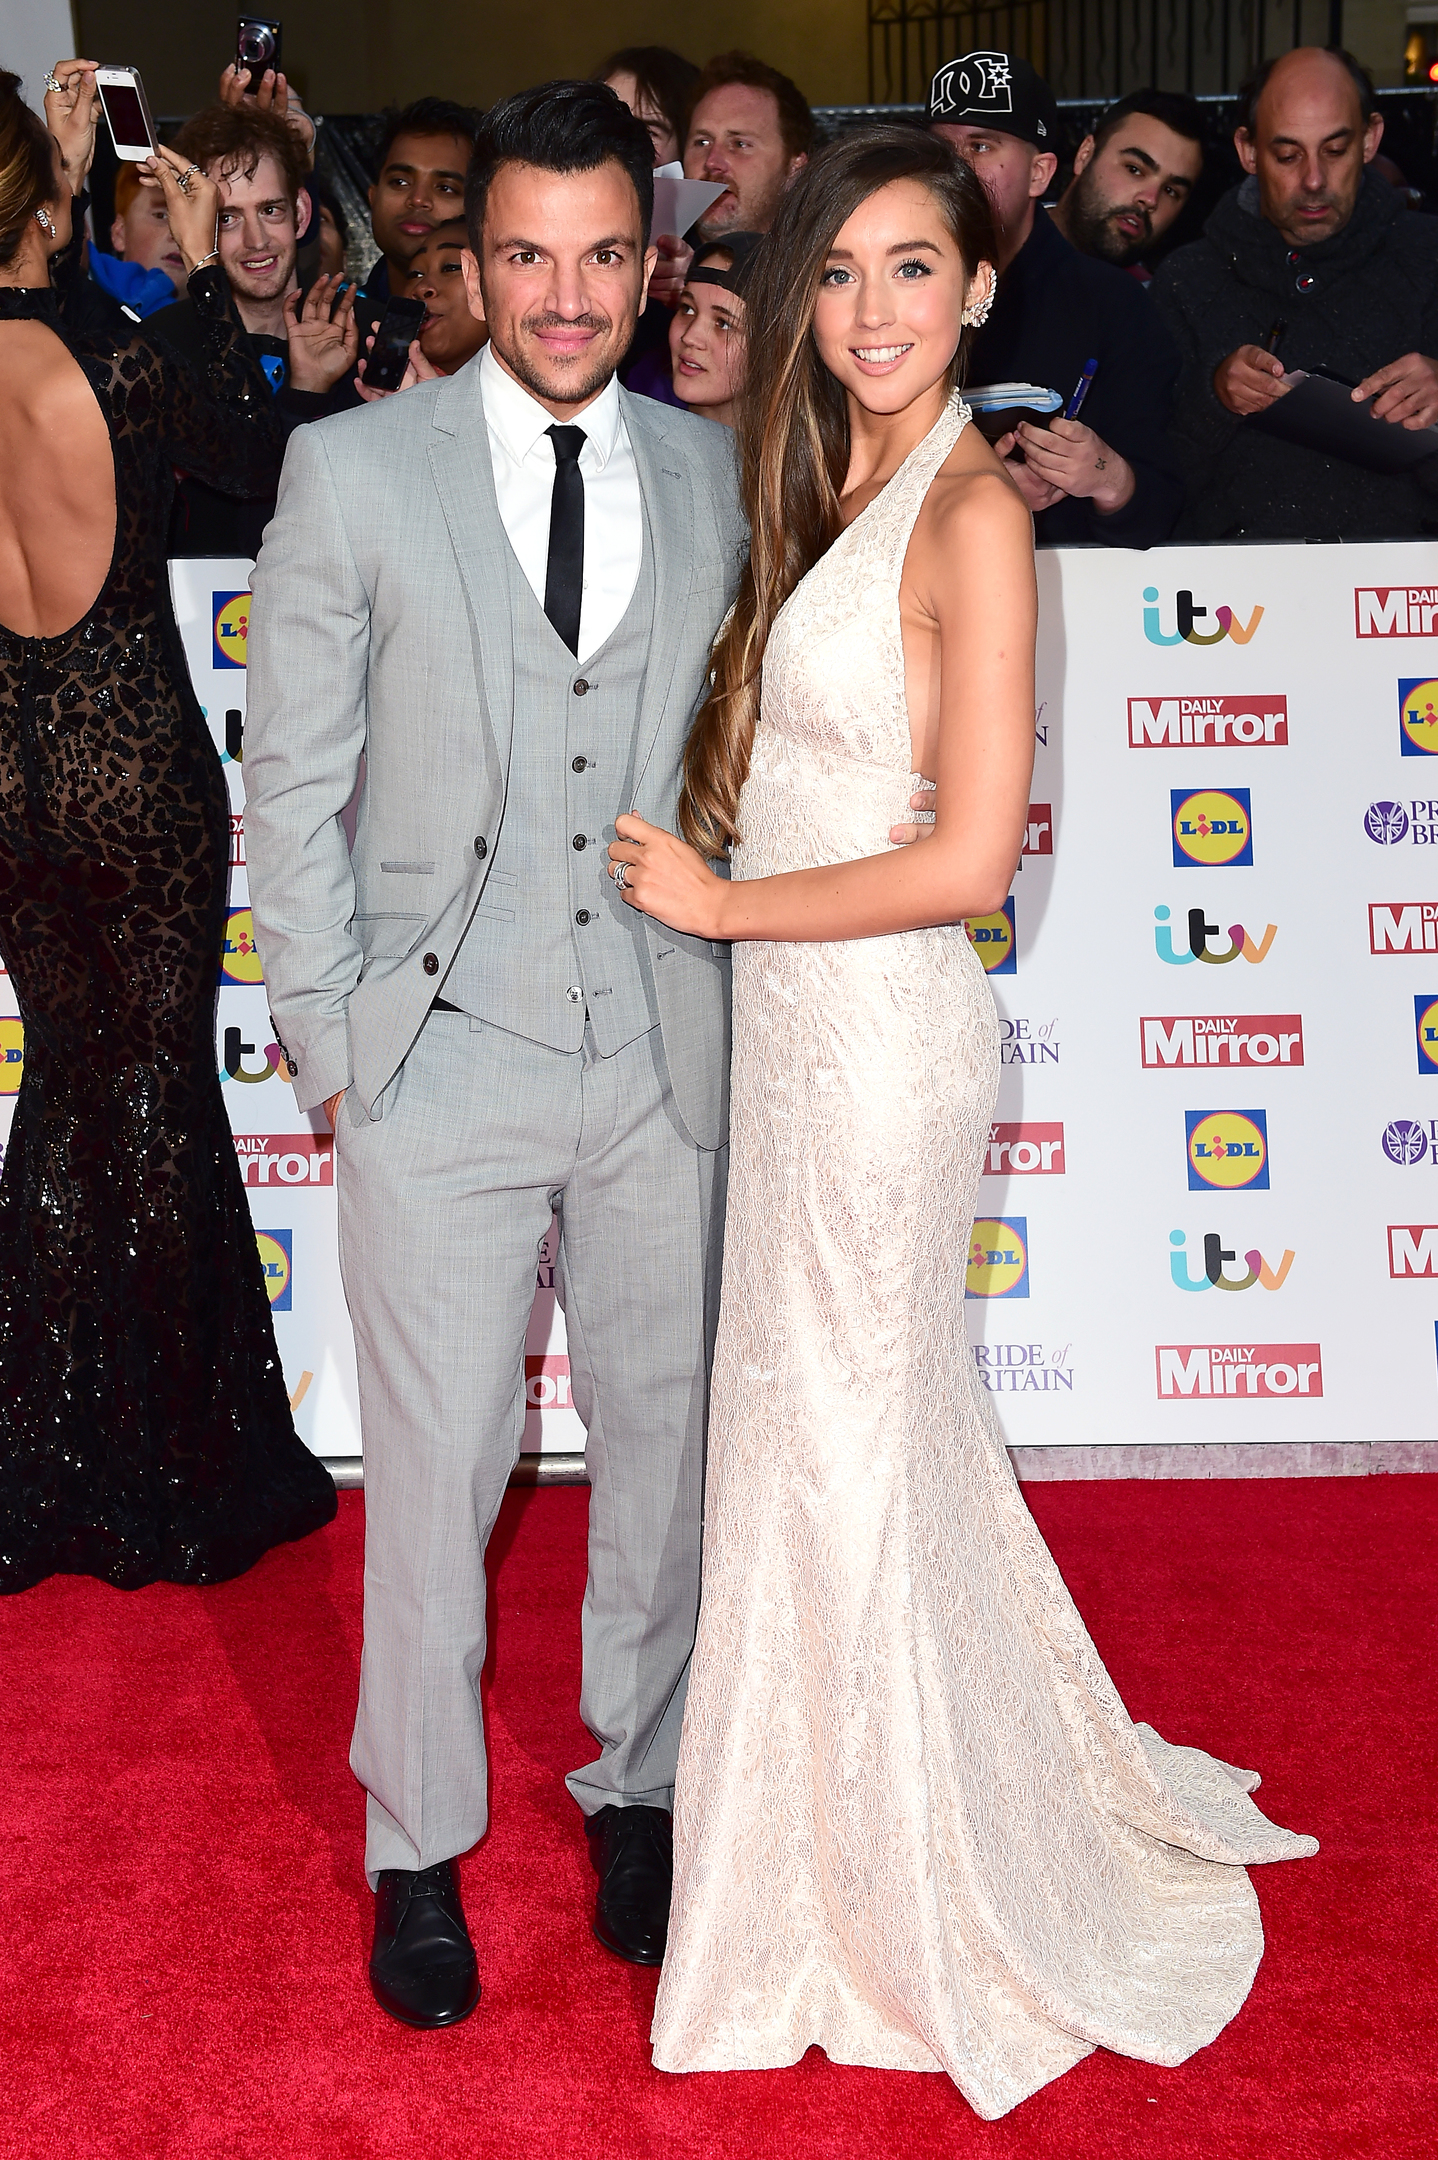 Peter Andre and Emily MacDonagh (PA)